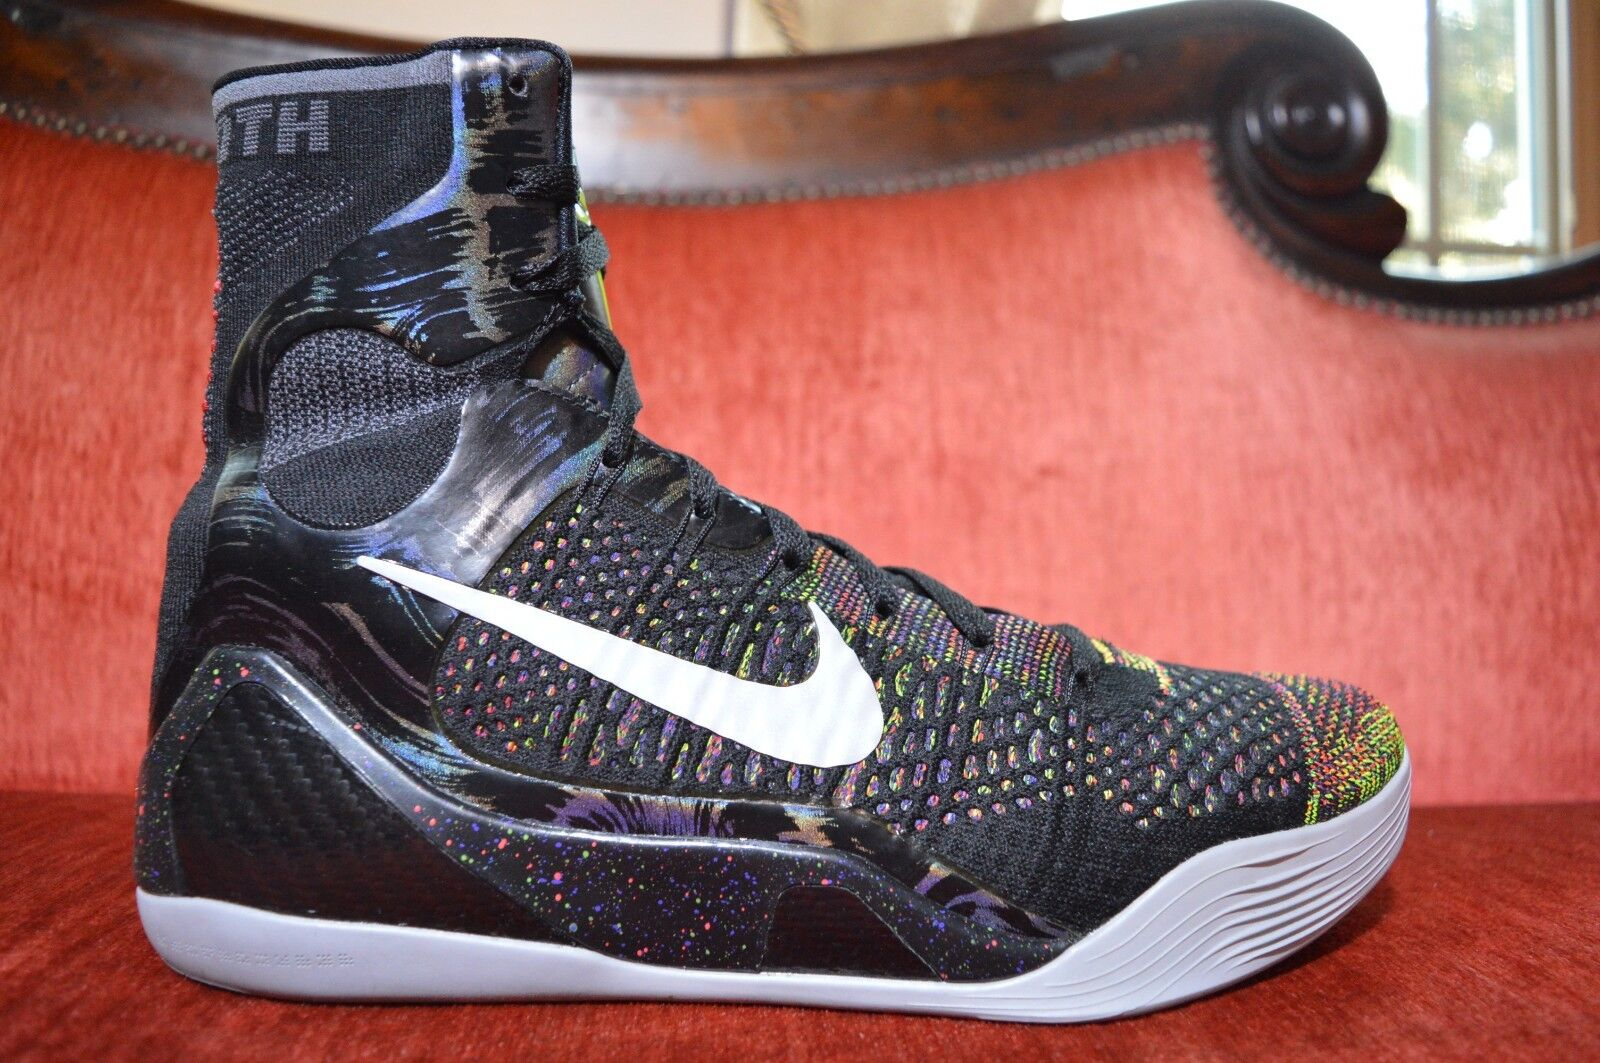 CLEAN Nike Air Kobe 9 IX Elite Master Piece Multi Color Sneakers Men's Size 11.5